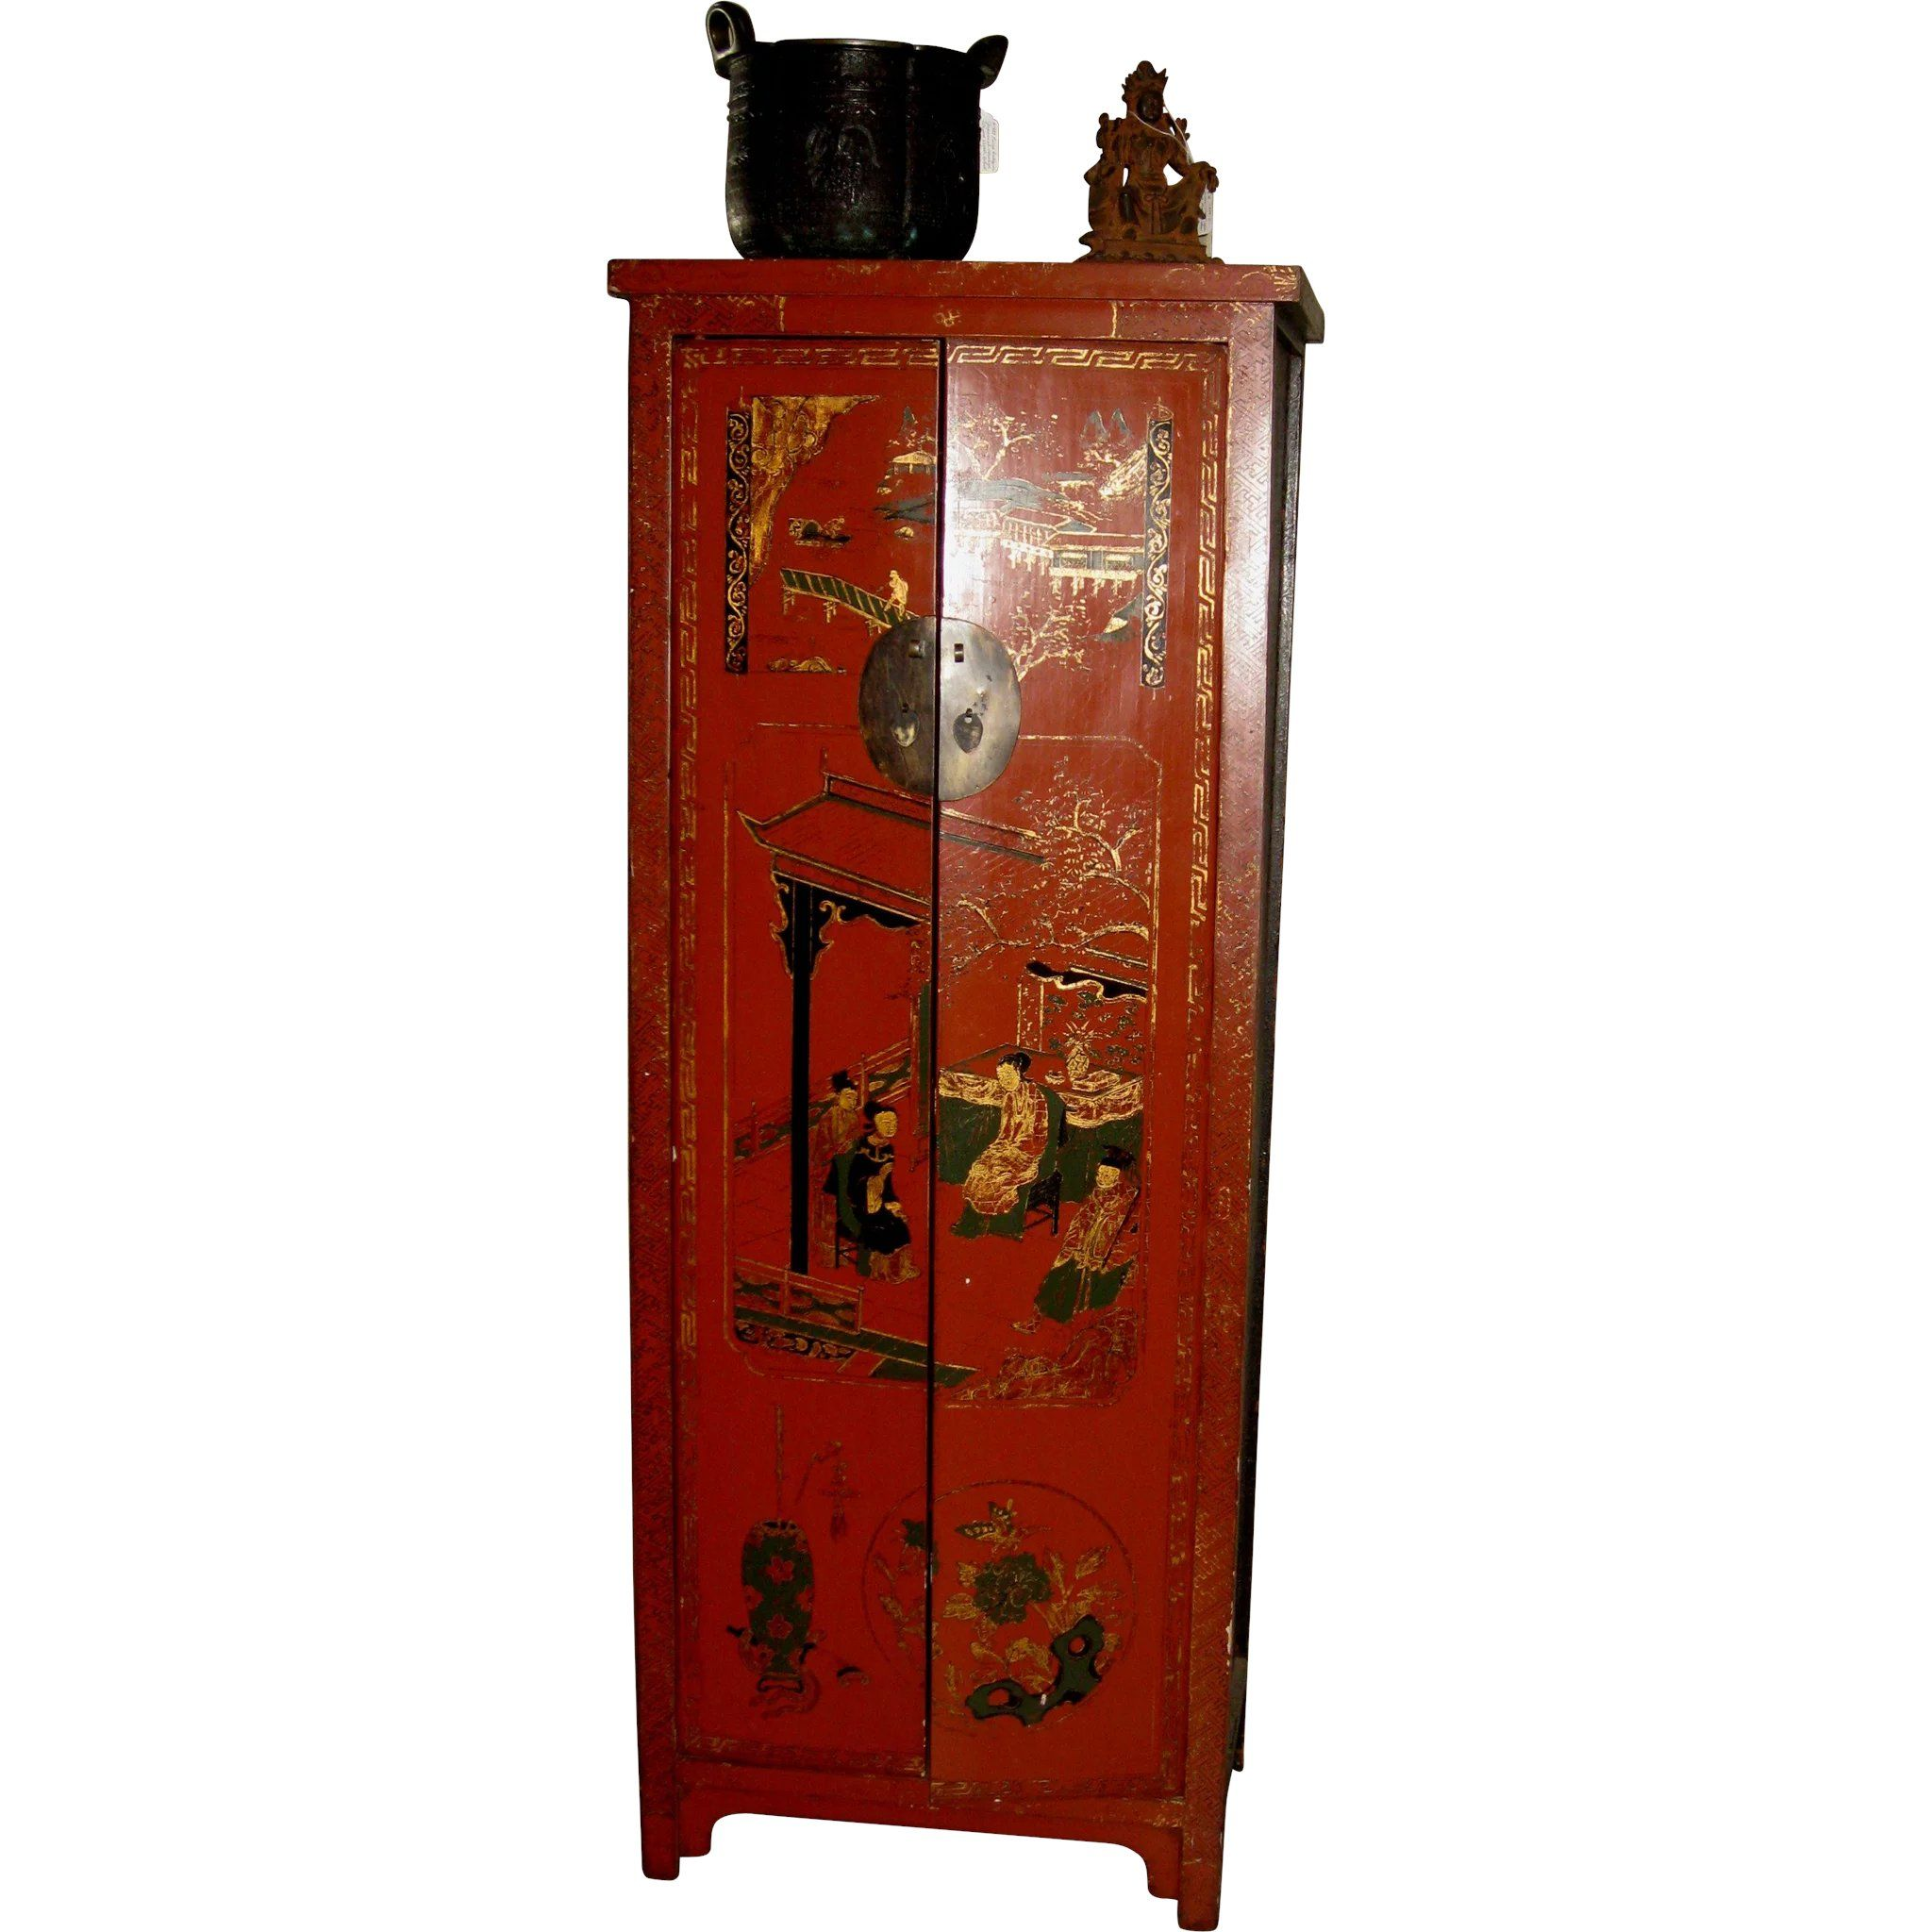 Old Chinese Red Lacquer Cabinet For Wine Storage Www Rubylane Com Vintagebeginshere Asian Asiandecor Asianinterior Wine Storage Wine Cabinets Red Lacquer